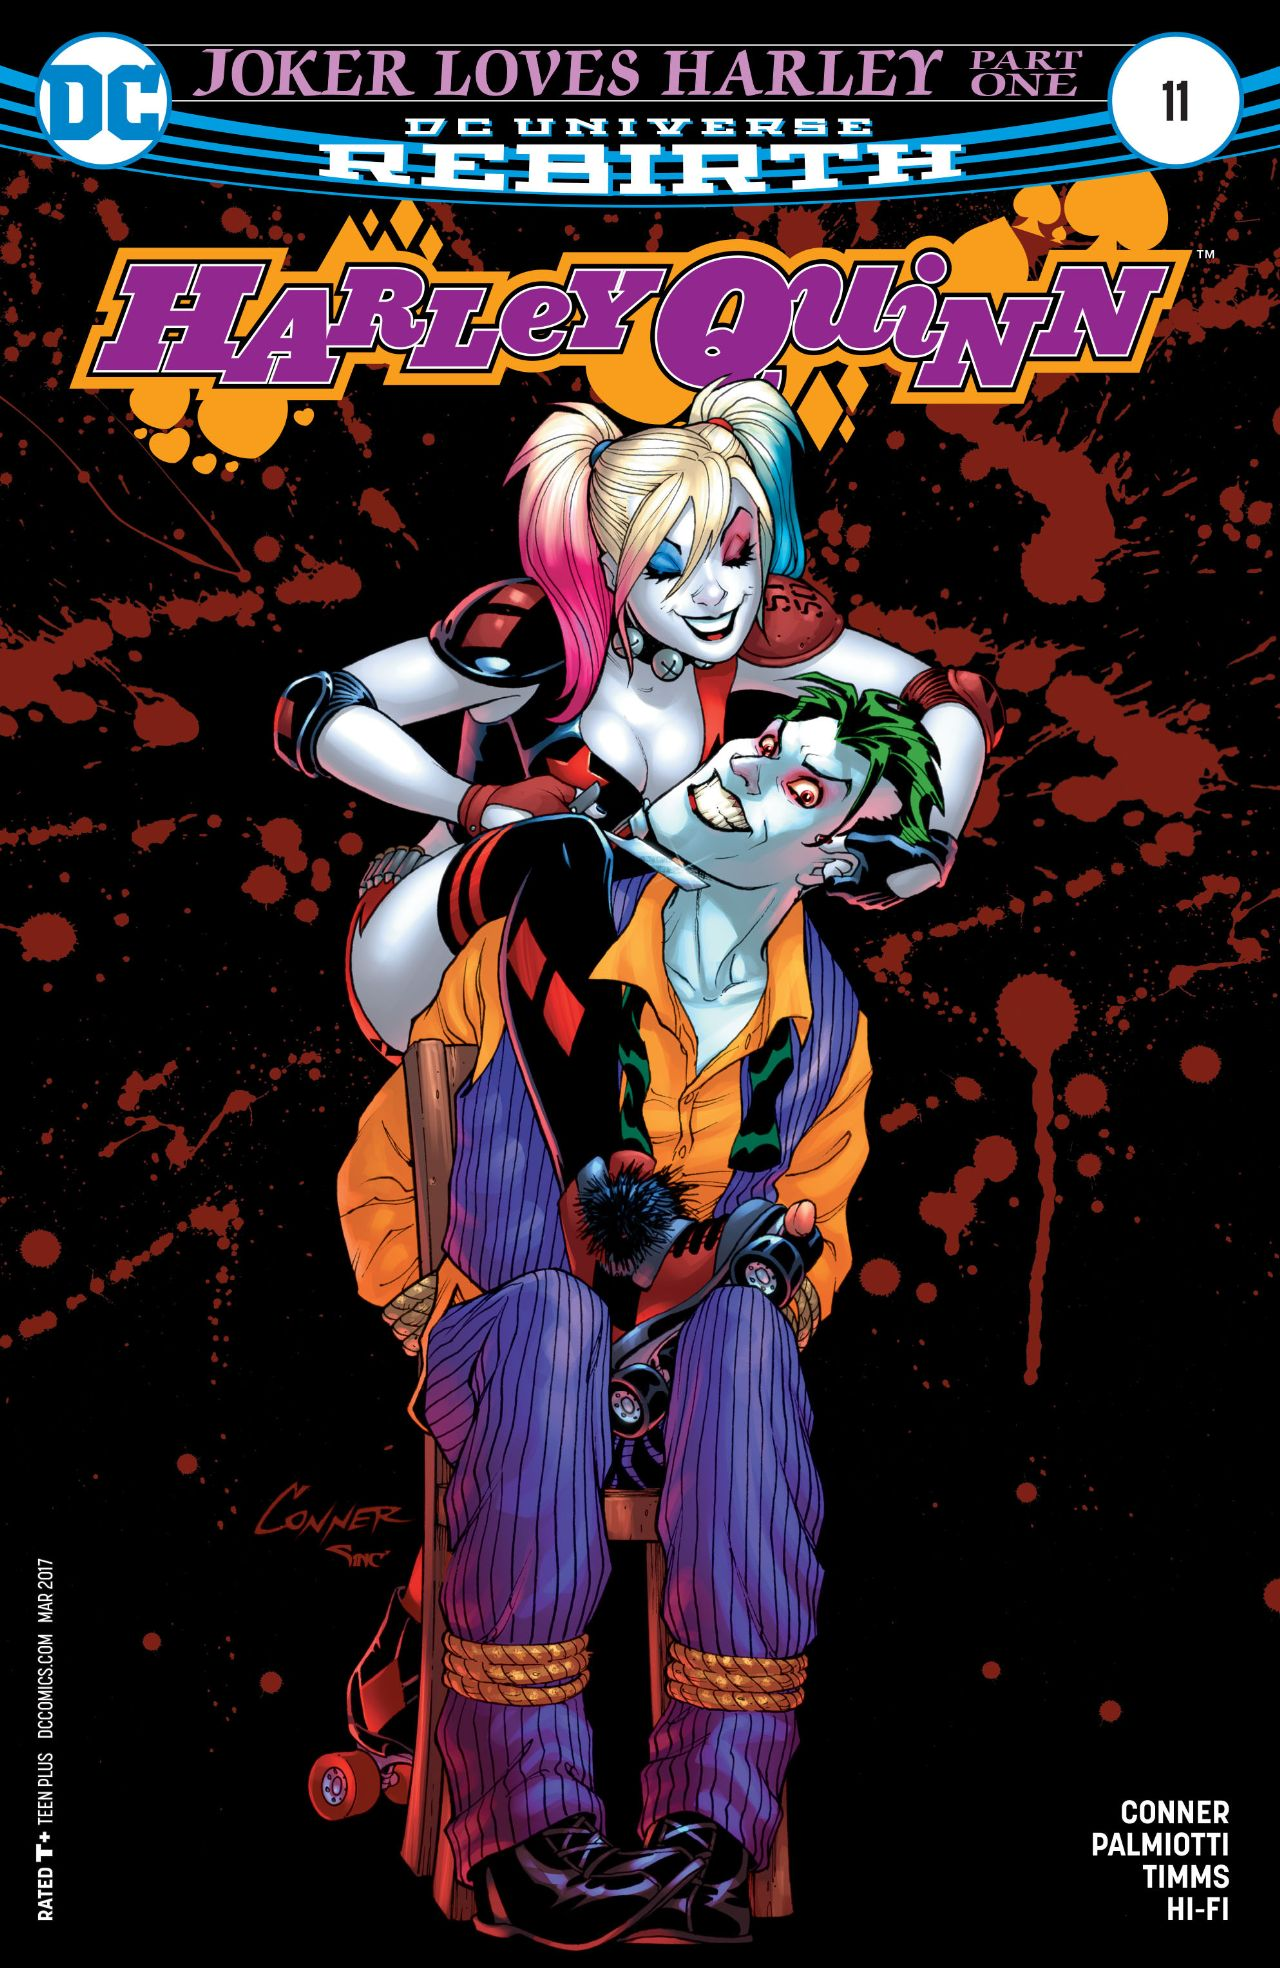 review HARLEY QUINN #11